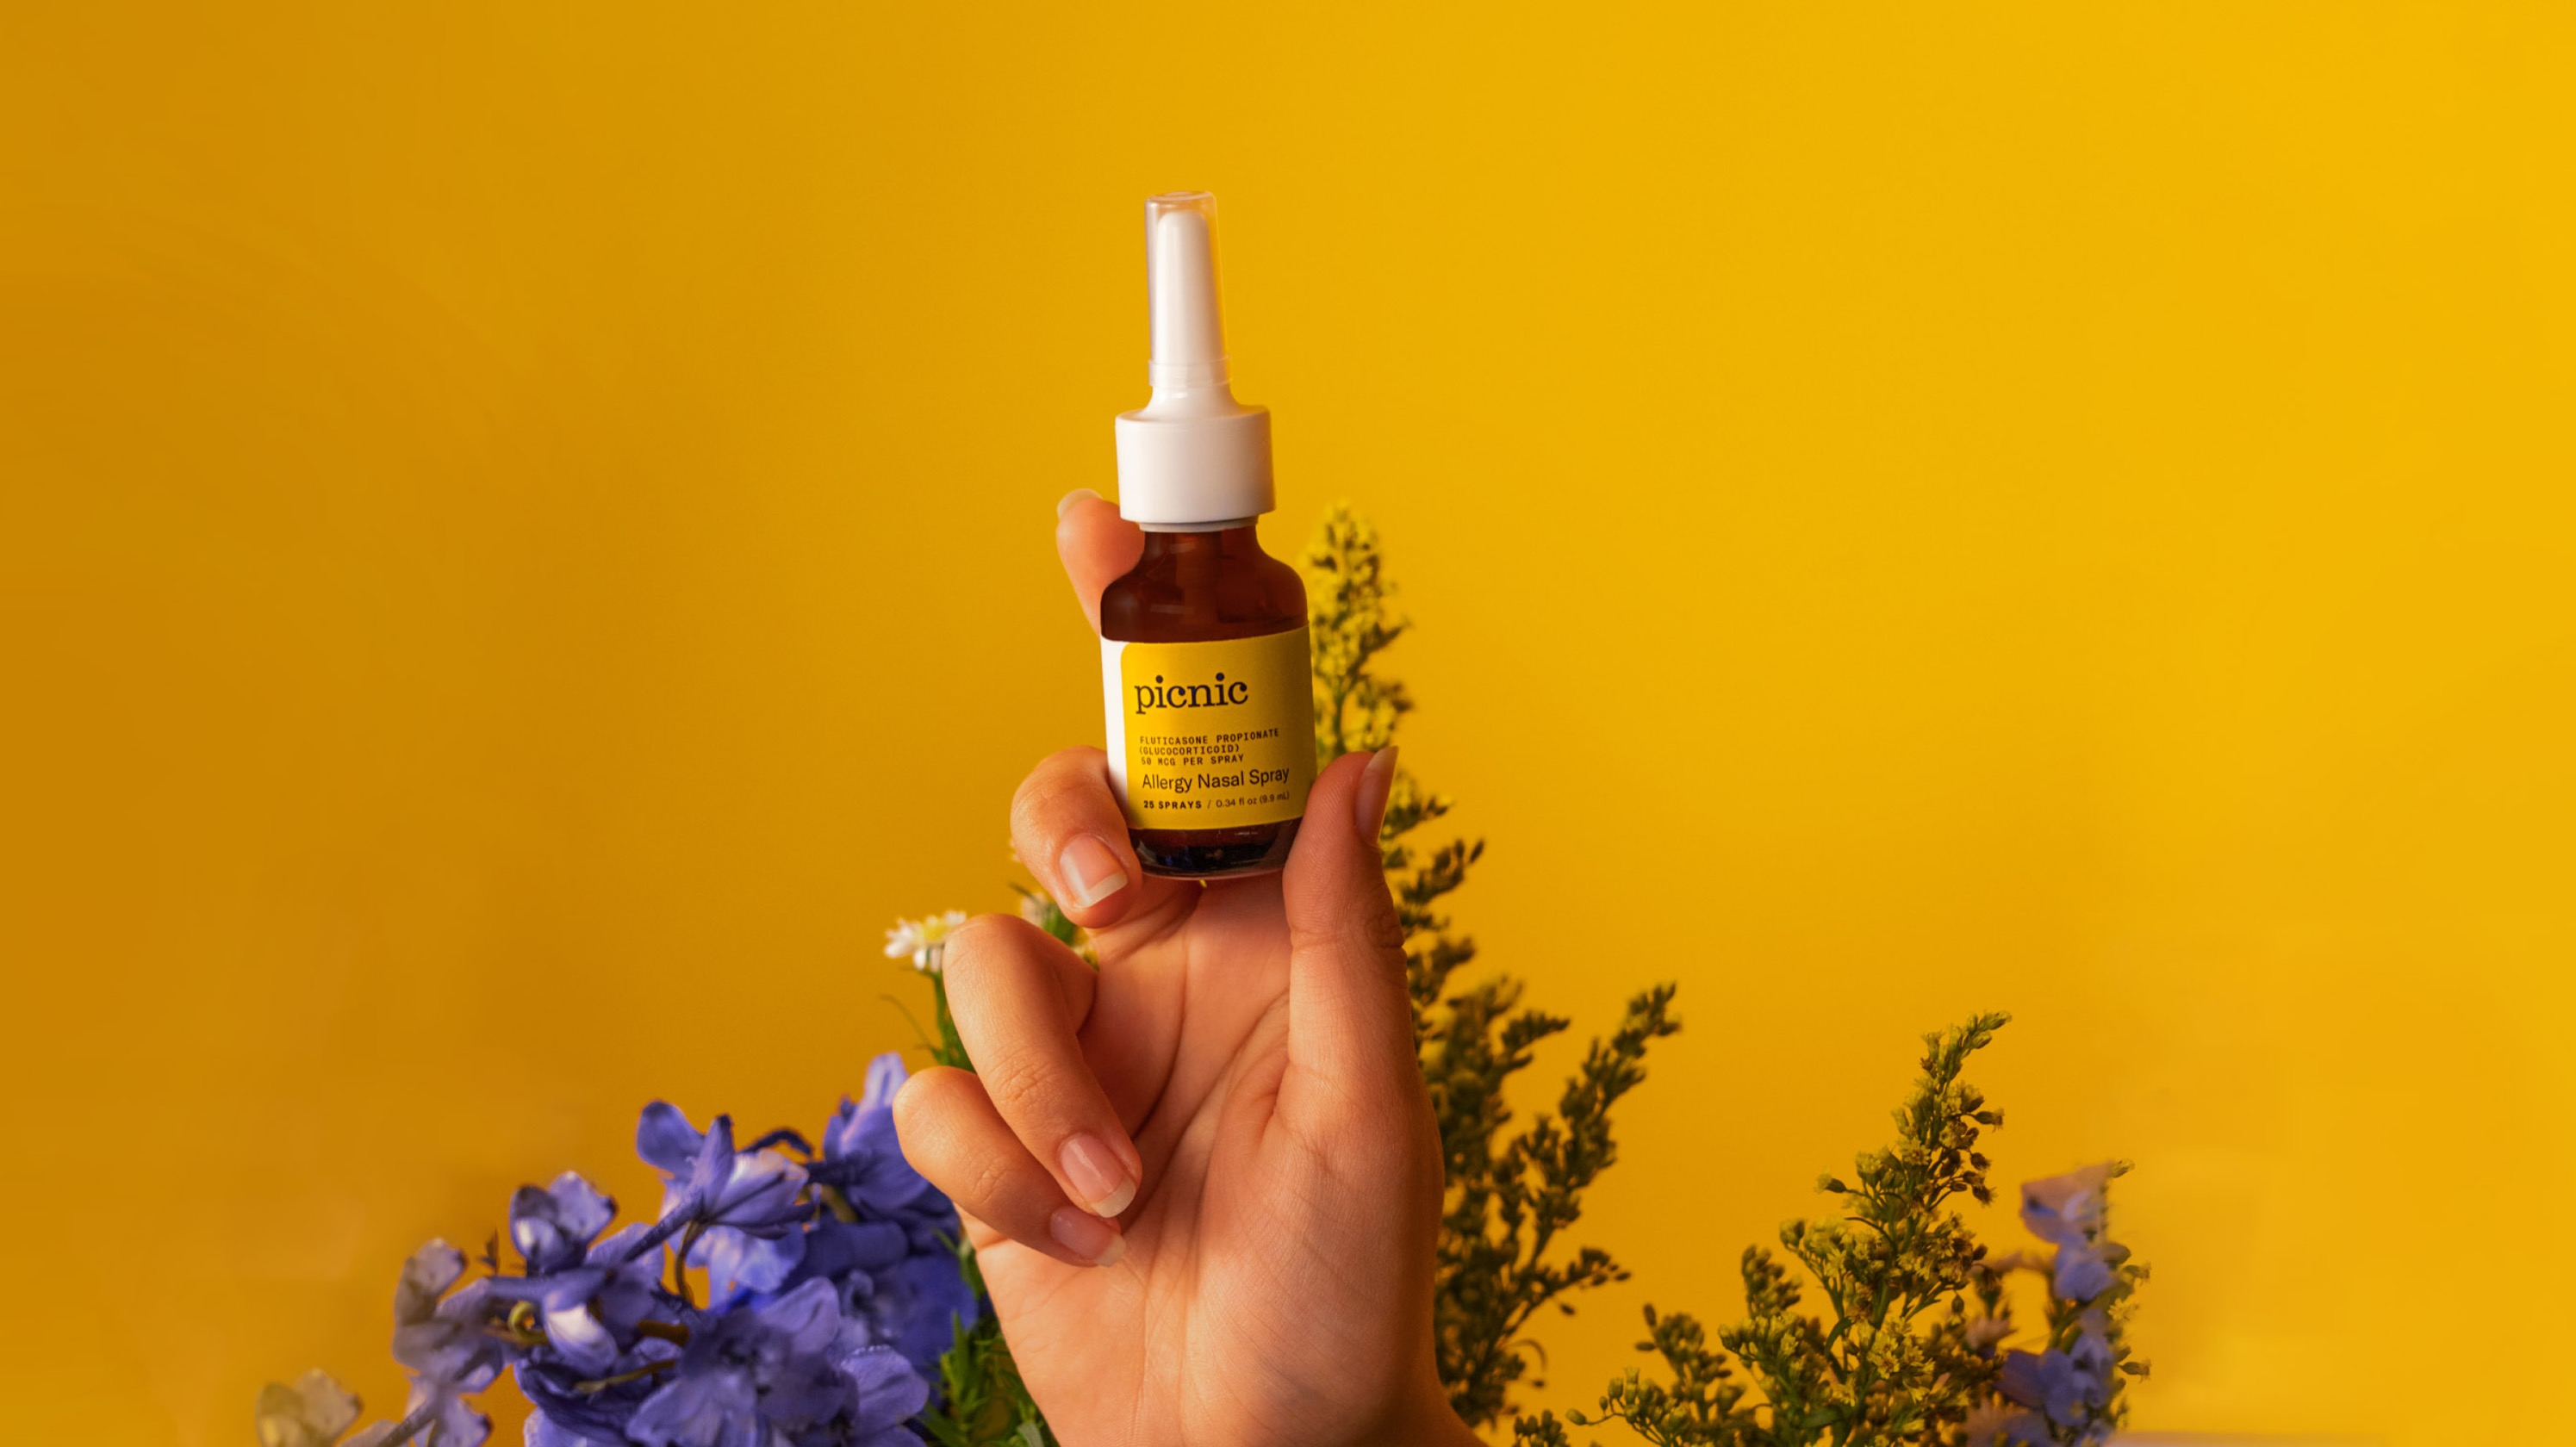 A person's hand holding up Picnic's nasal spray in front of flowers.